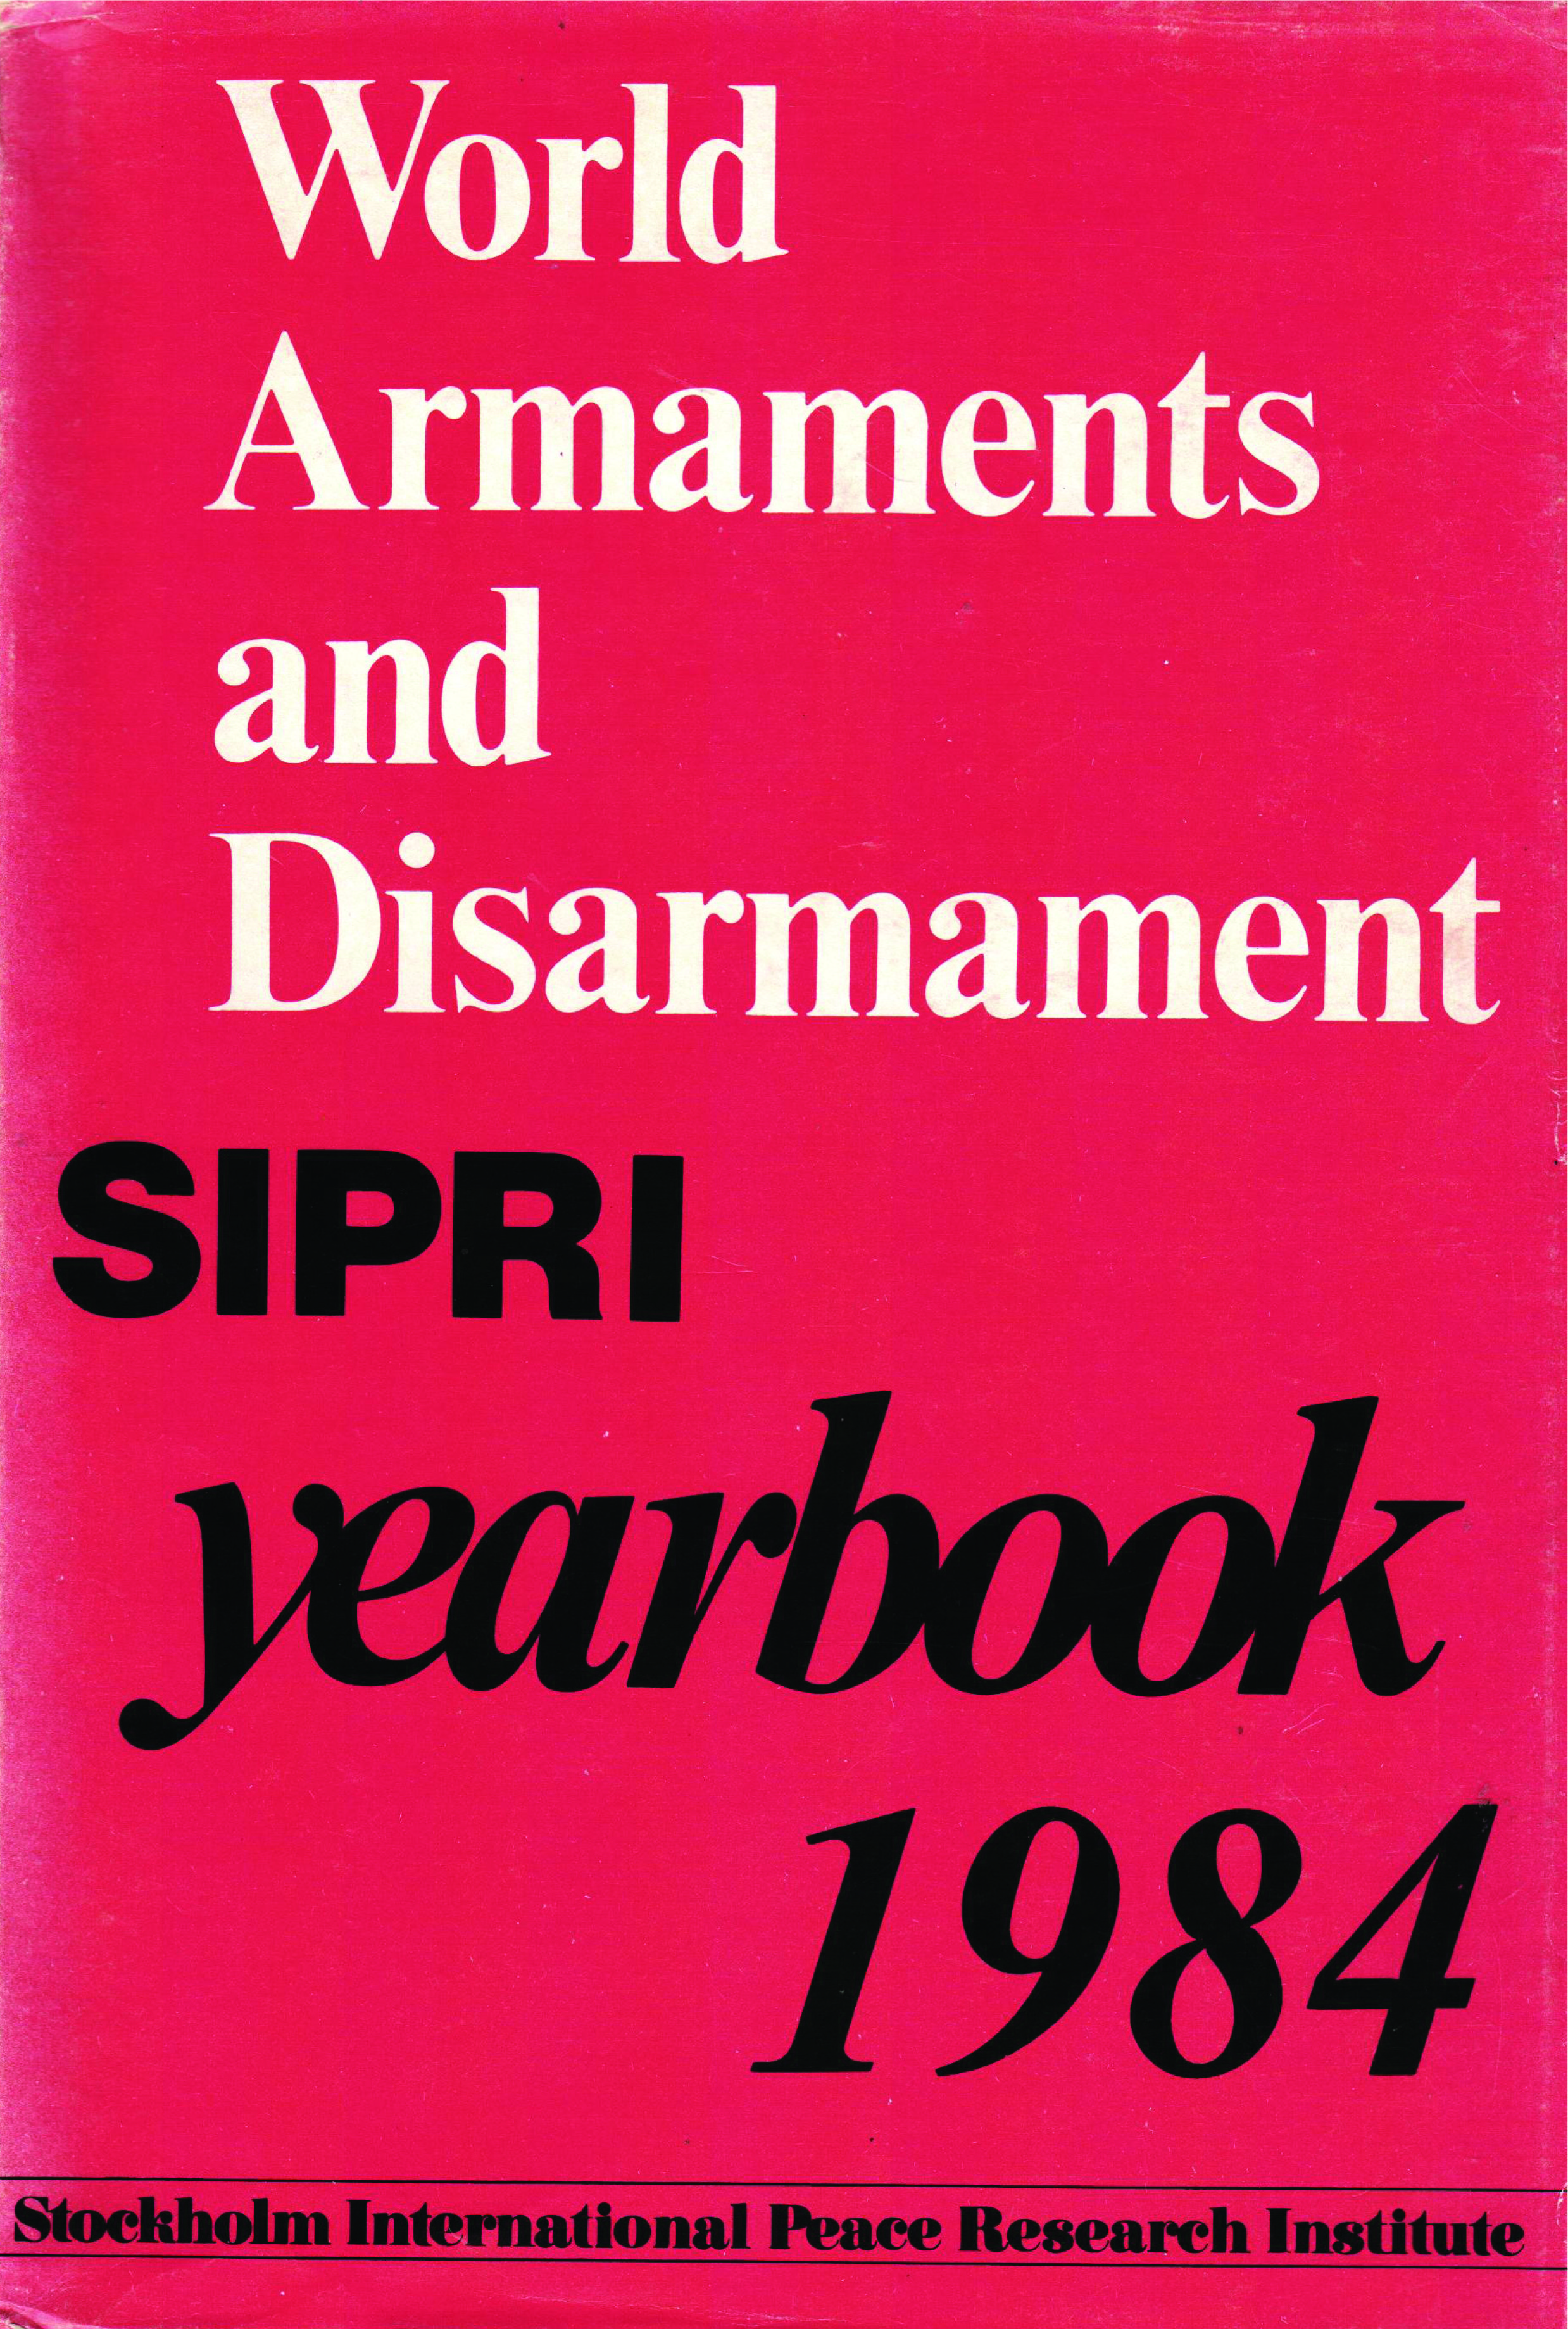 SIPRI yearbook 1984 cover